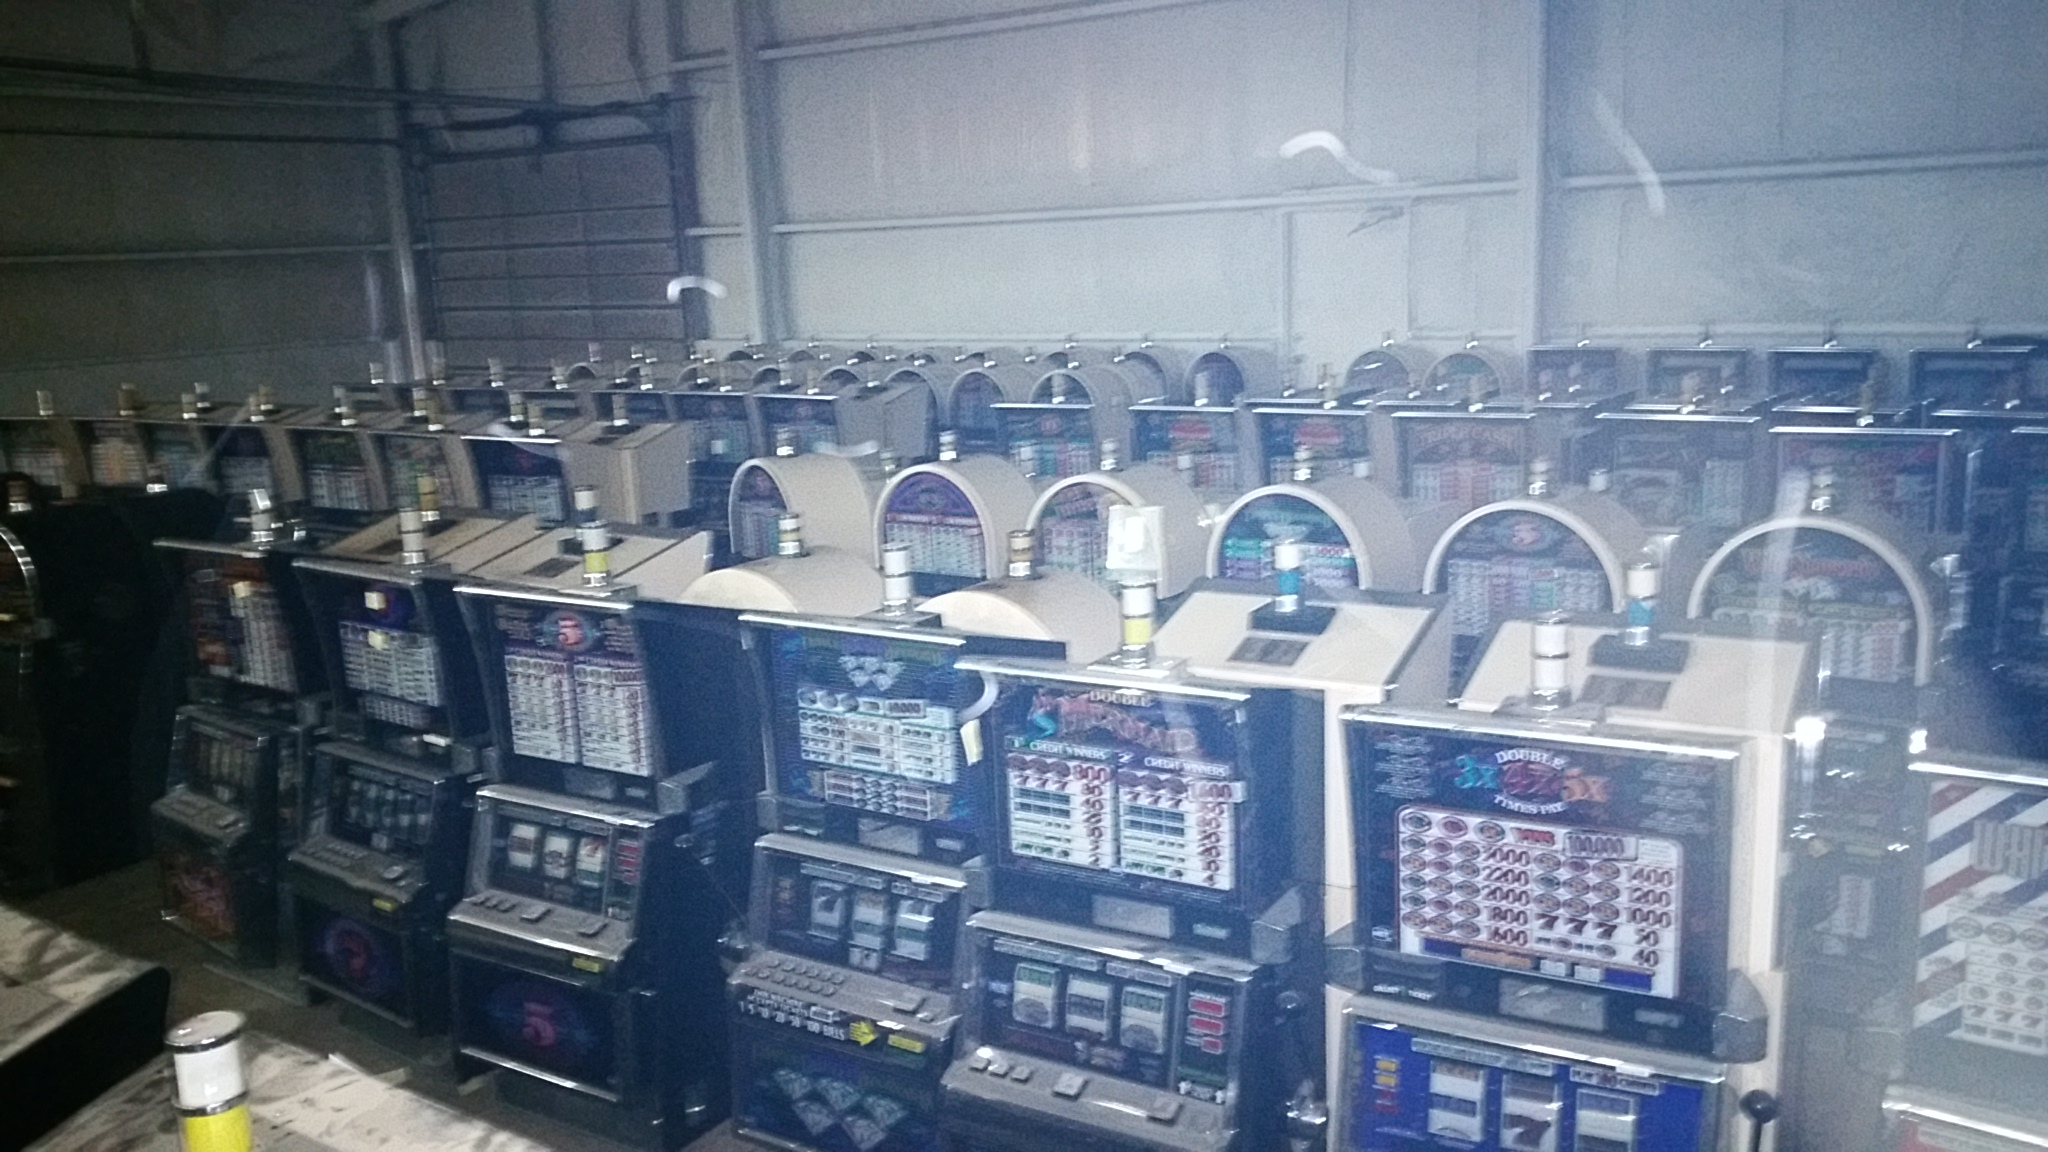 Igt S2000 Slot Machines Parts Complete Or Plug And Play